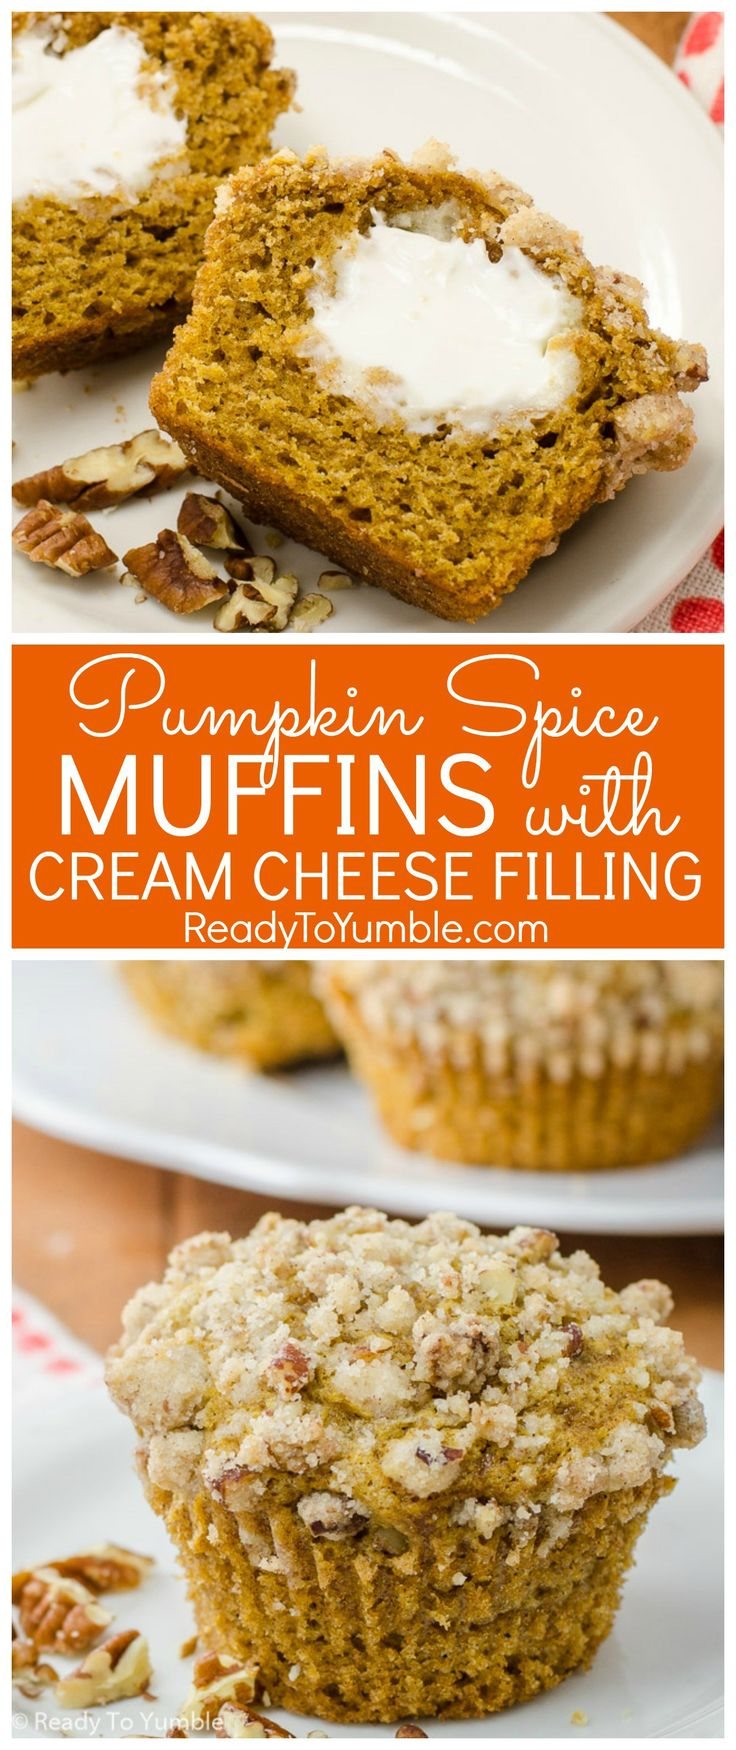 ... on Pinterest | Apple cinnamon, Chocolate chip muffins and Pumpkins